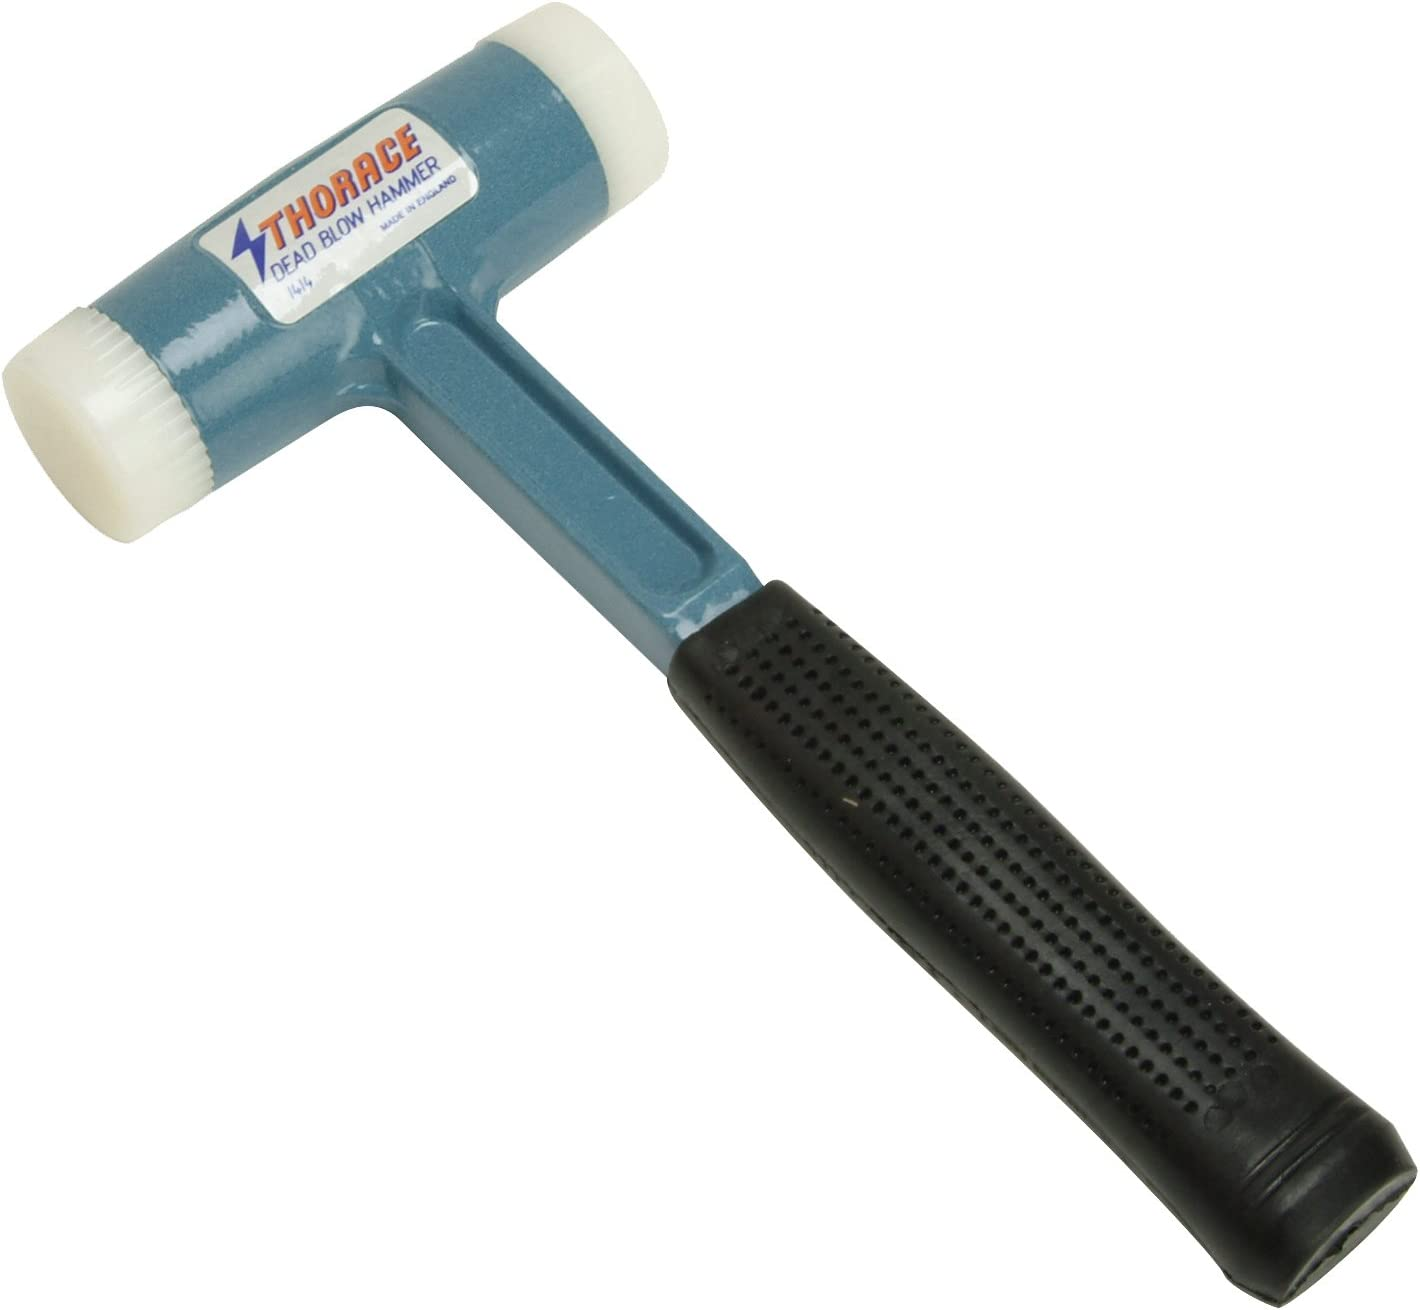 Thor 2020 Dead Blow Nylon Hammer 4 1 4lb Amazon Co Uk Diy Tools Check out our dead blow hammer selection for the very best in unique or custom, handmade pieces from our shops. thor 2020 dead blow nylon hammer 4 1 4lb